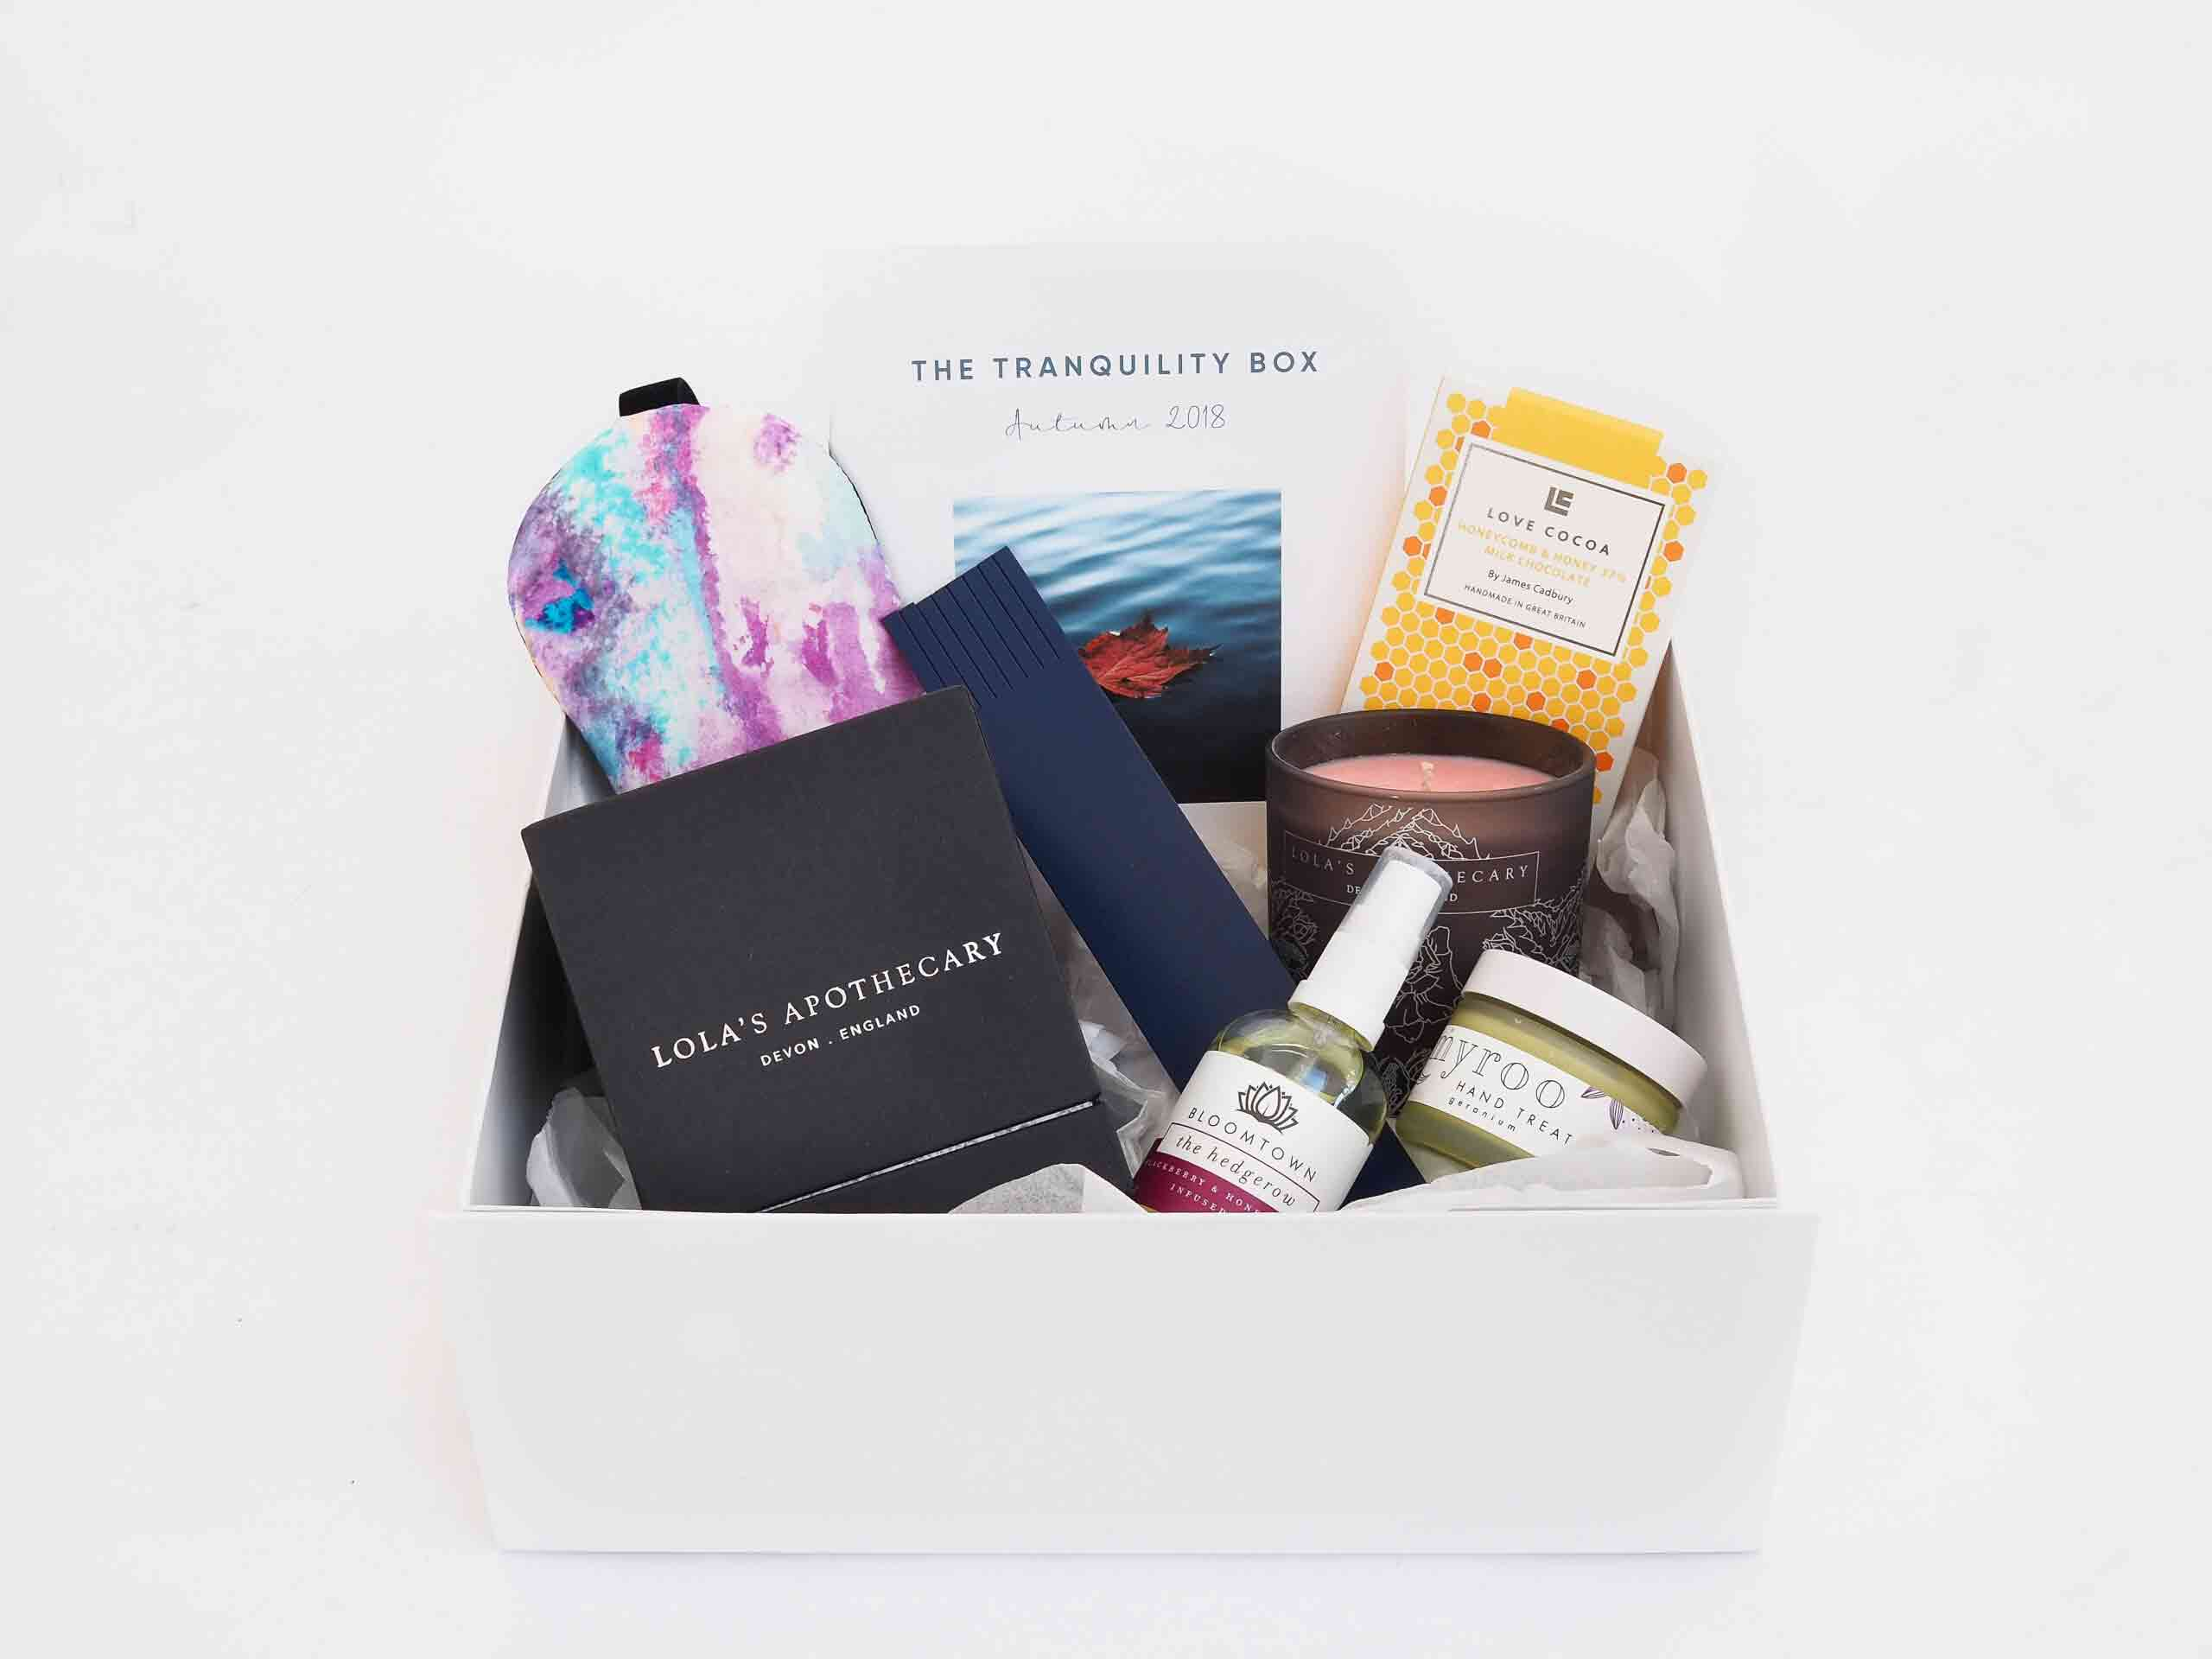 The Tranquility Box